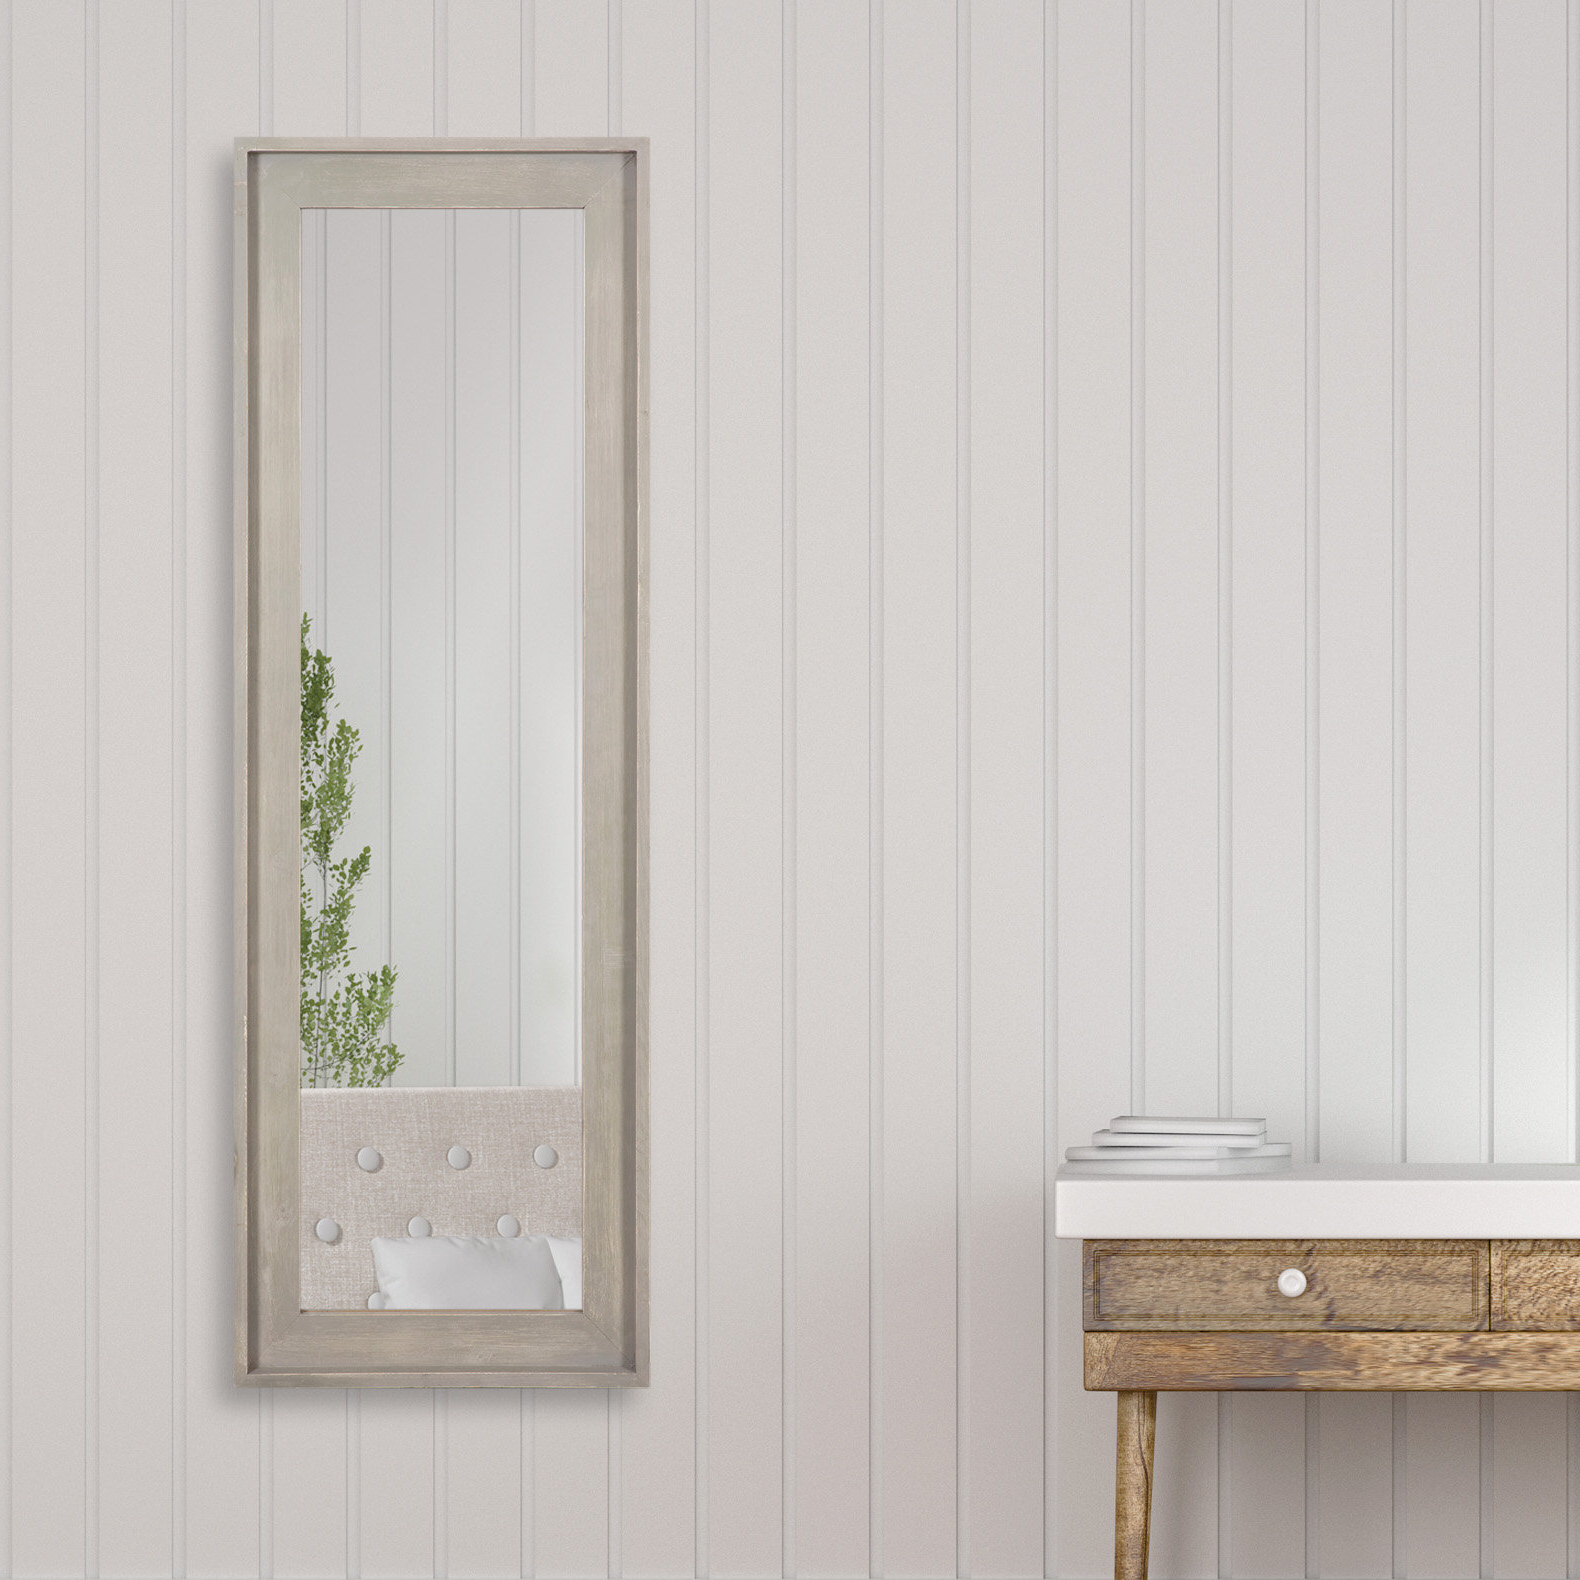 Padang Irregular Wood Framed Wall Mirrors Regarding 2019 Natural Wood Frame Mirror (Gallery 8 of 20)